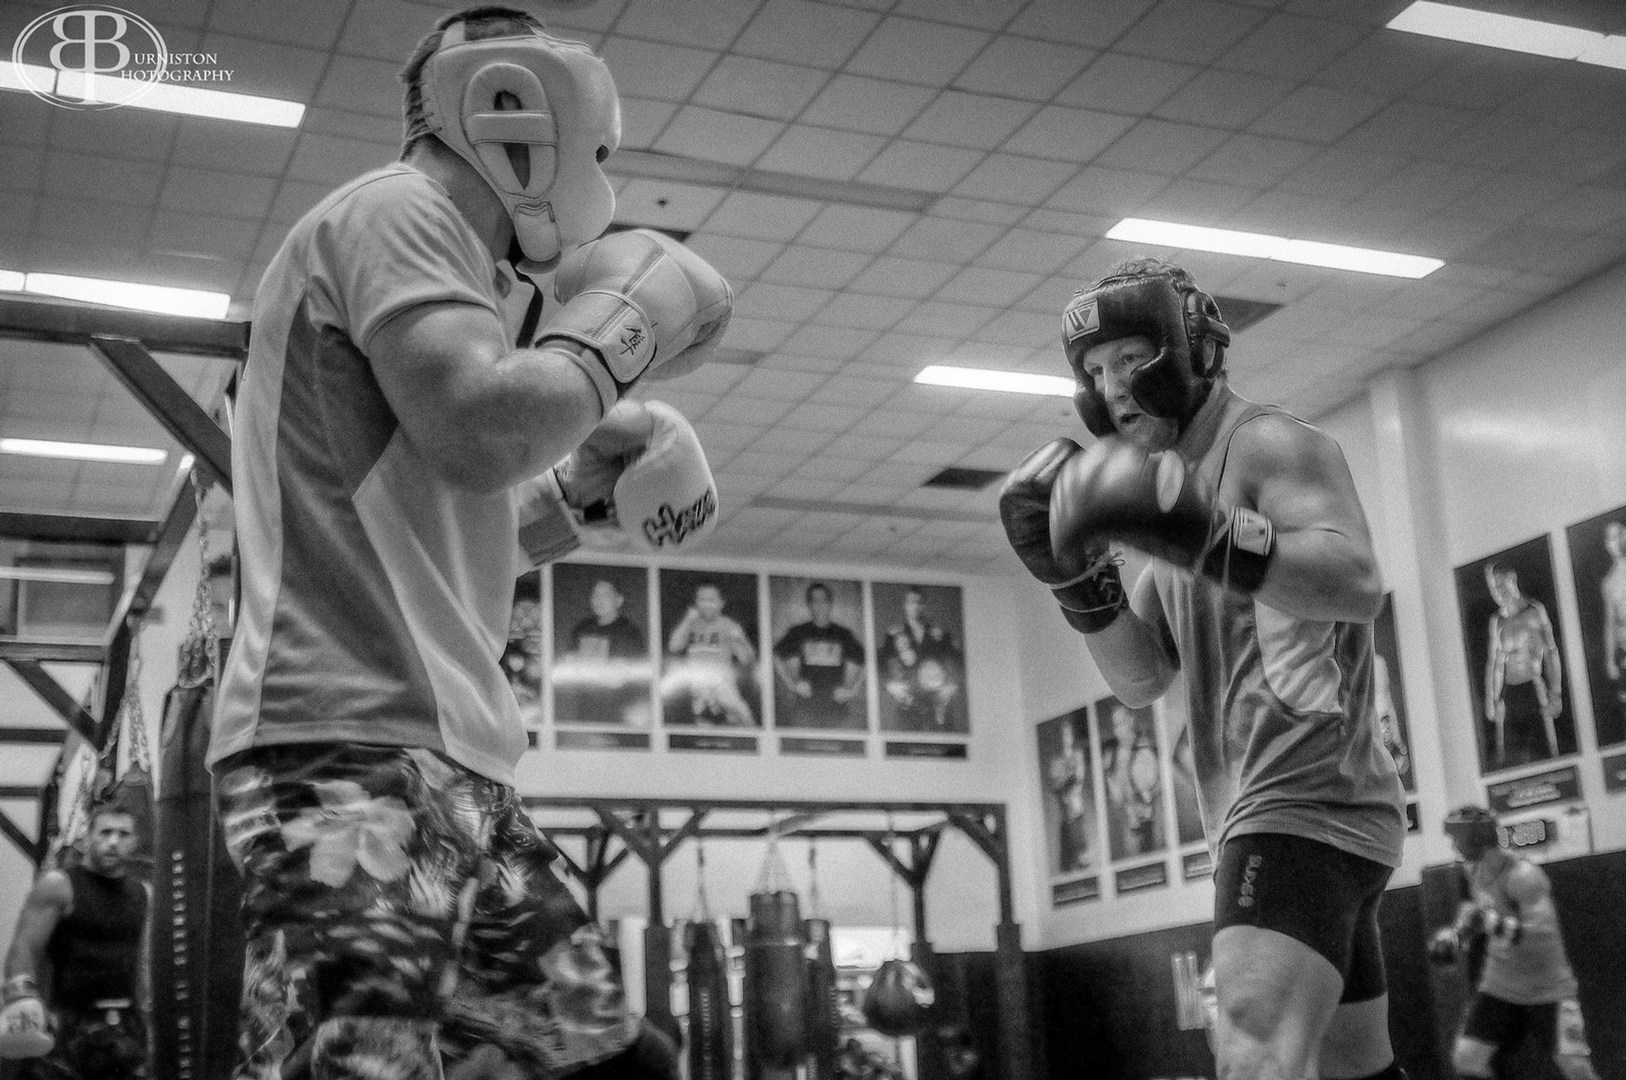 Mac Danzig and Gray Maynard sparring